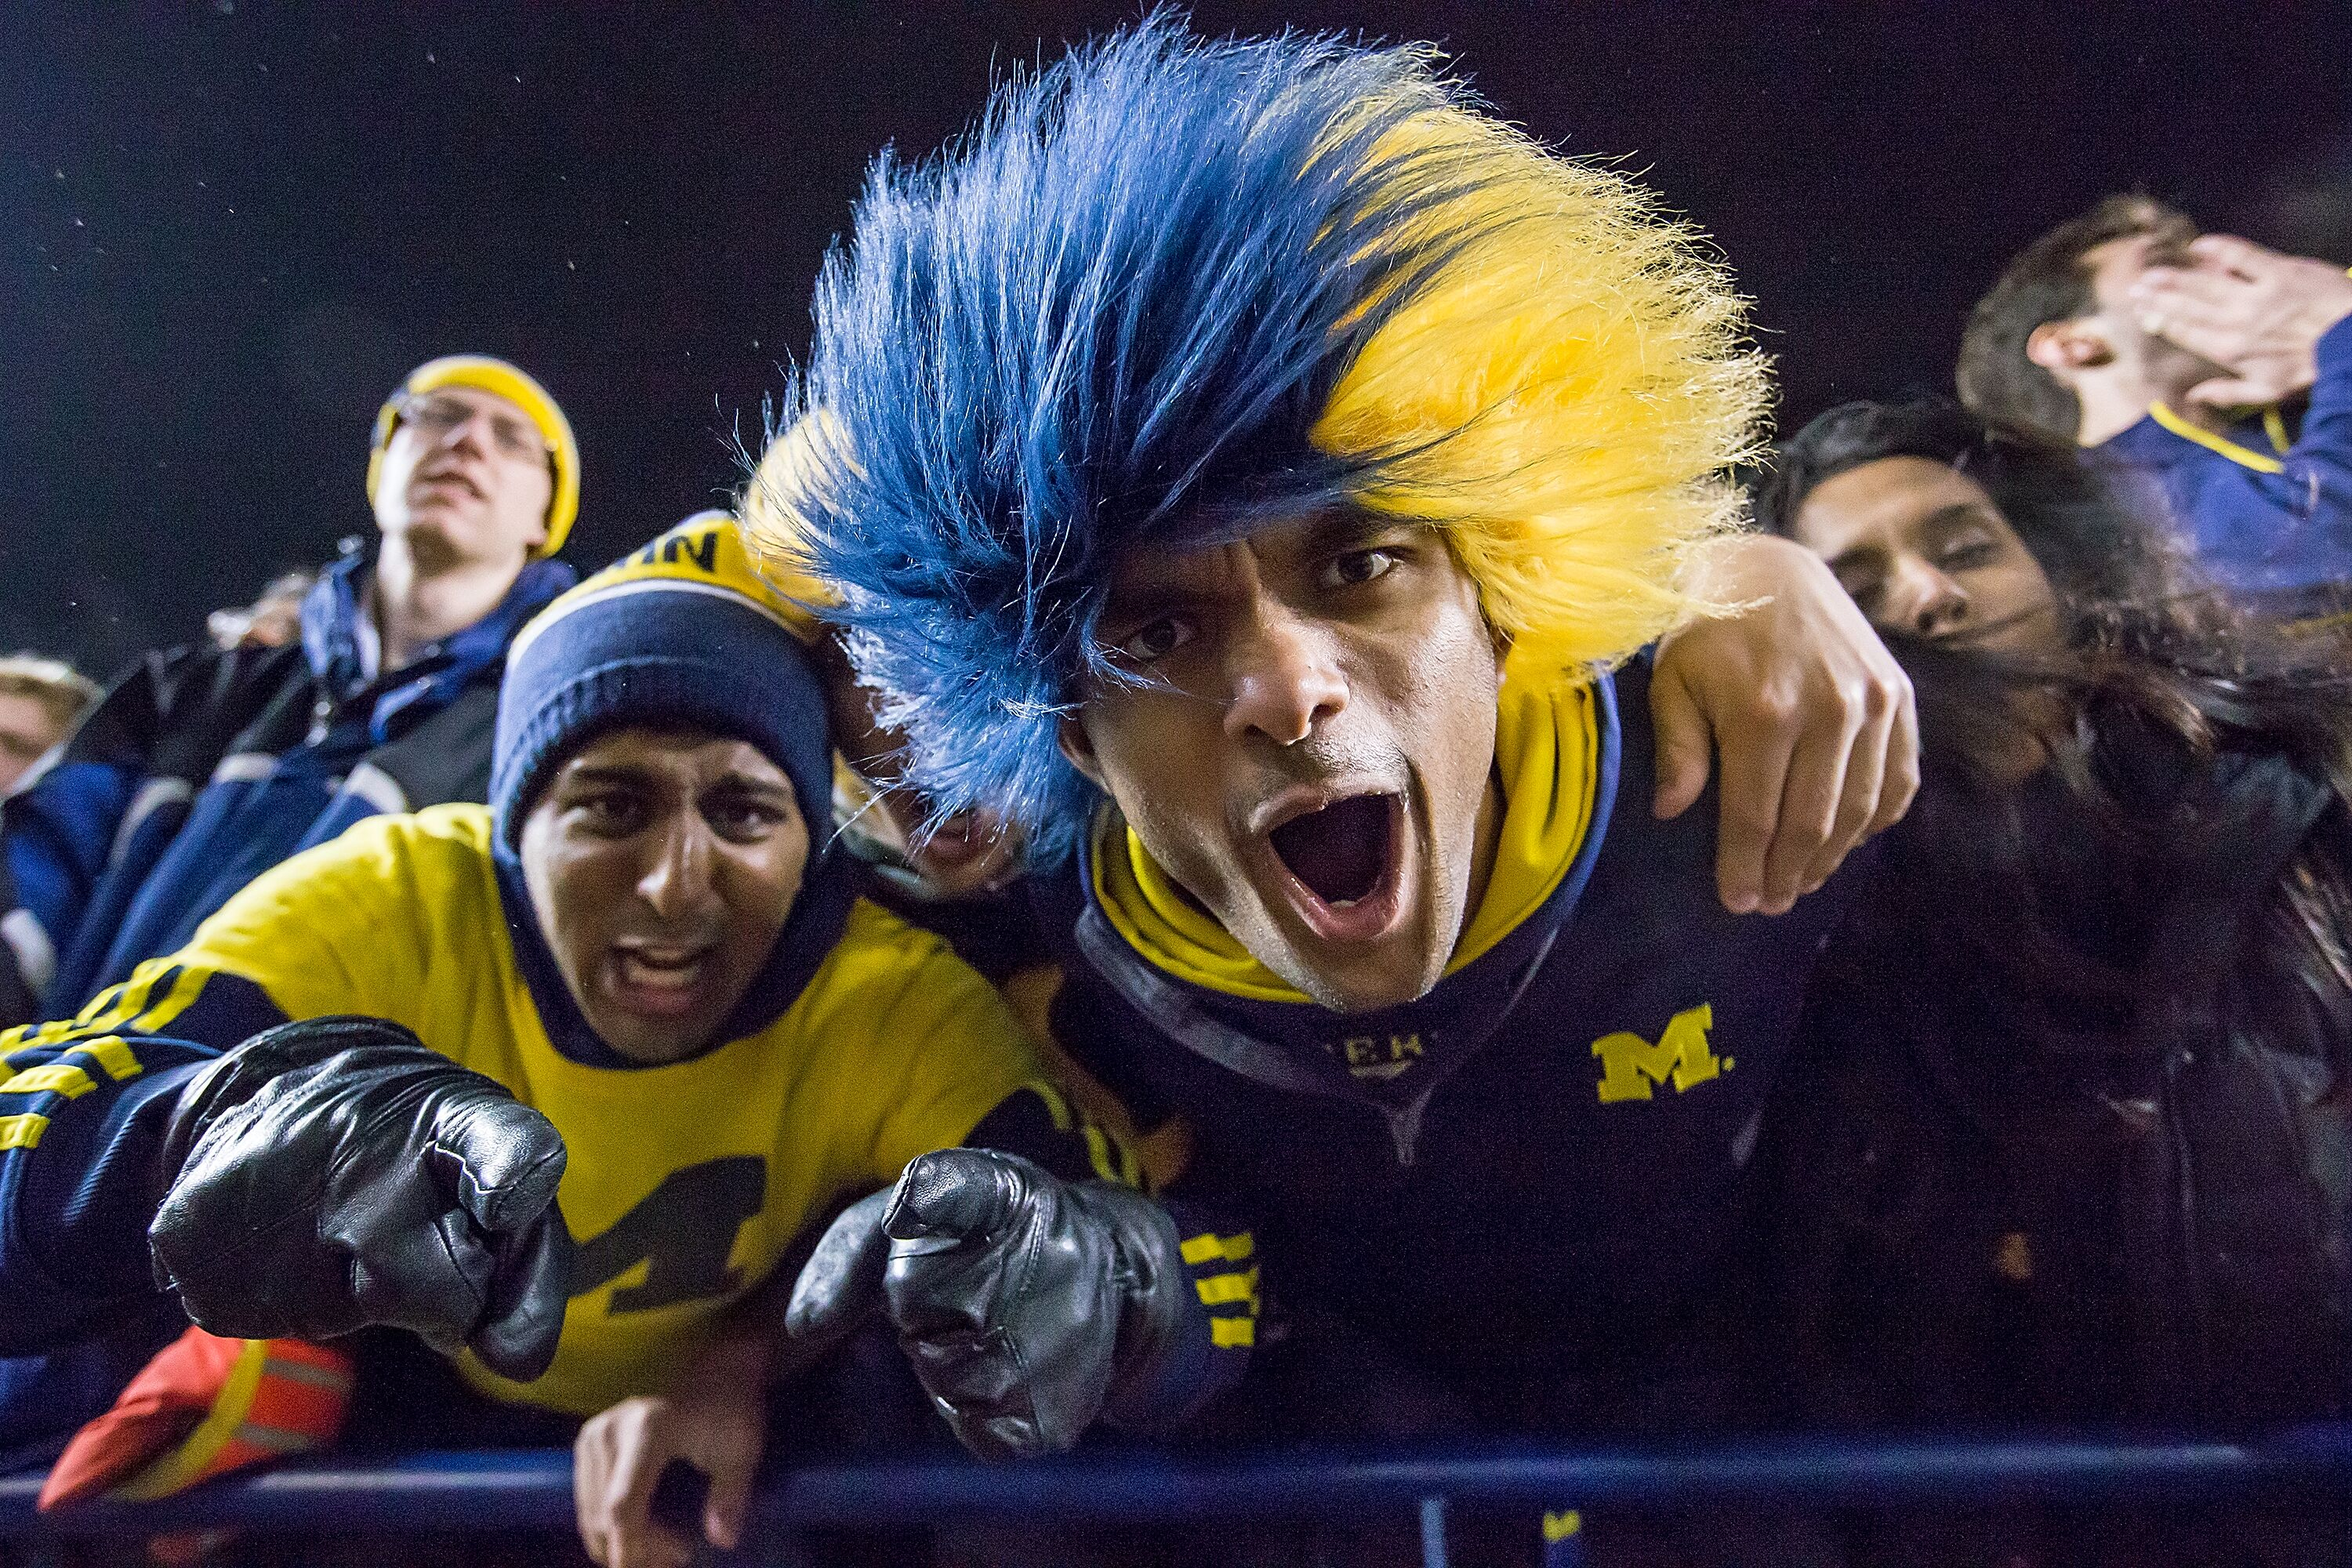 870313384-minnesota-v-michigan.jpg